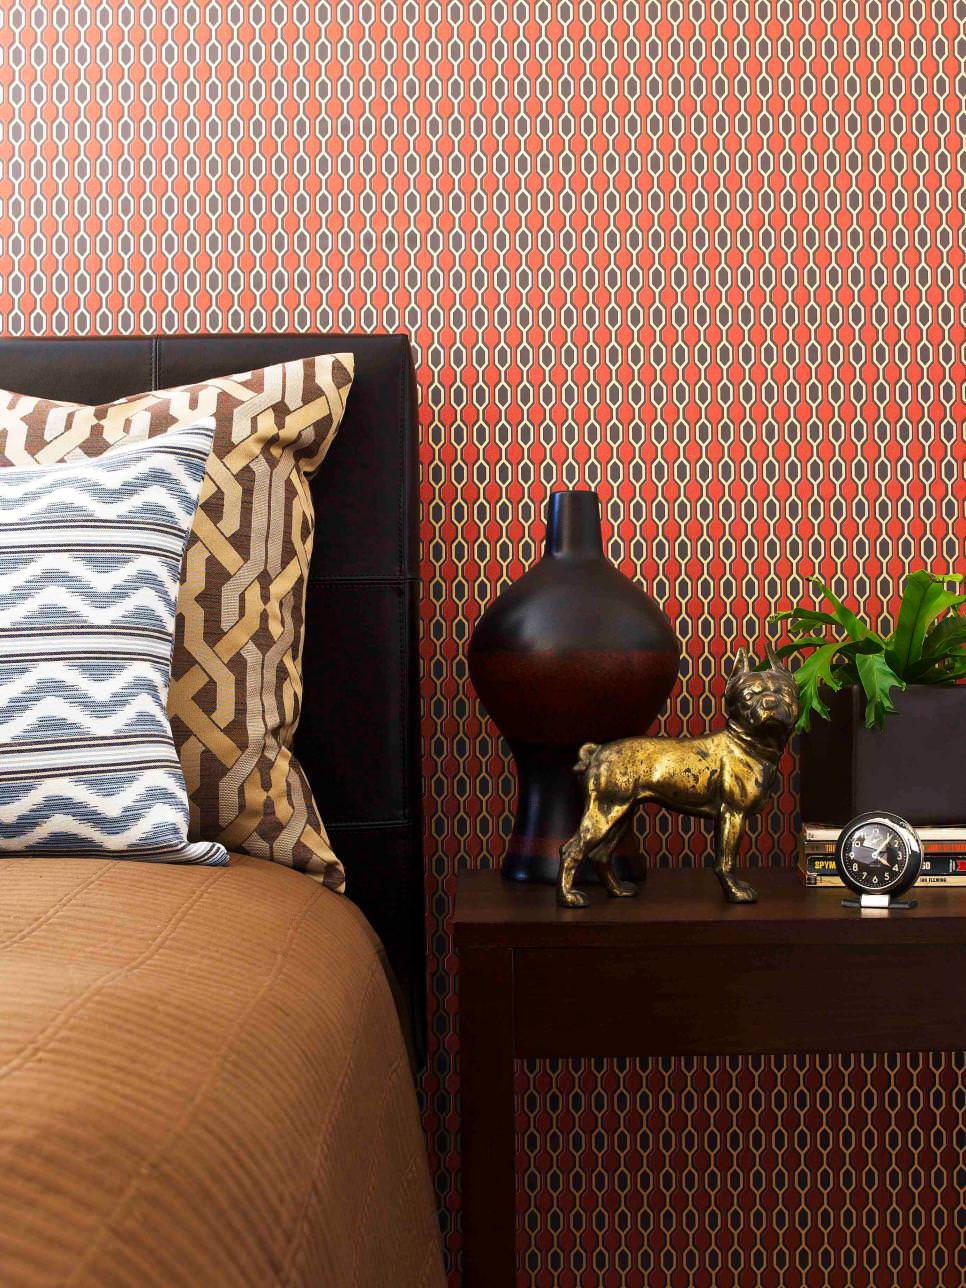 Orange Geometric wallpaper sticked to bedroom wall